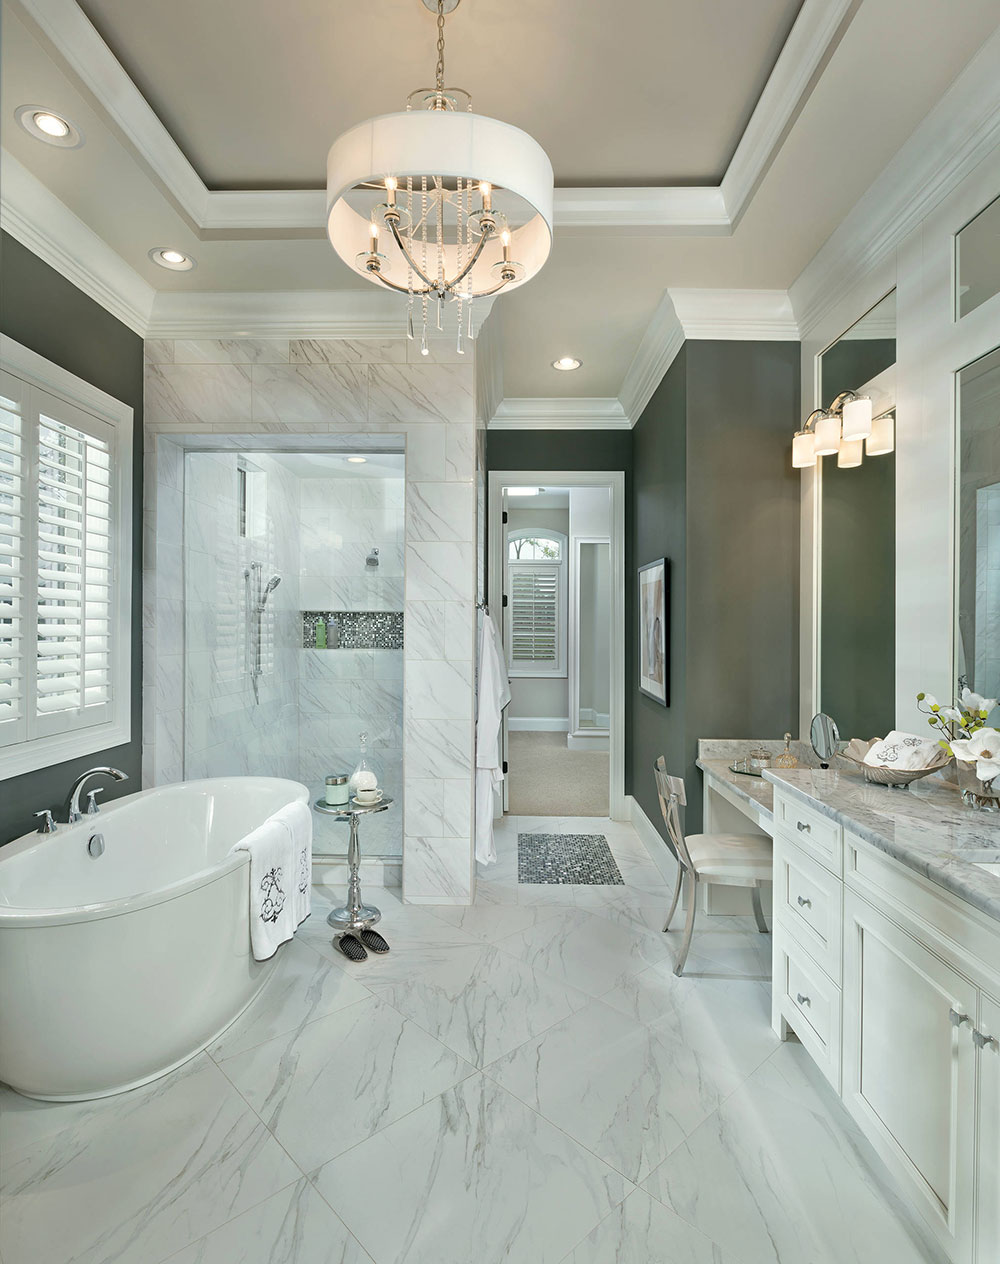 Asheville-by-AR-Homes-Cincinnati-OH How to clean the shower floor and make it sparkling clean